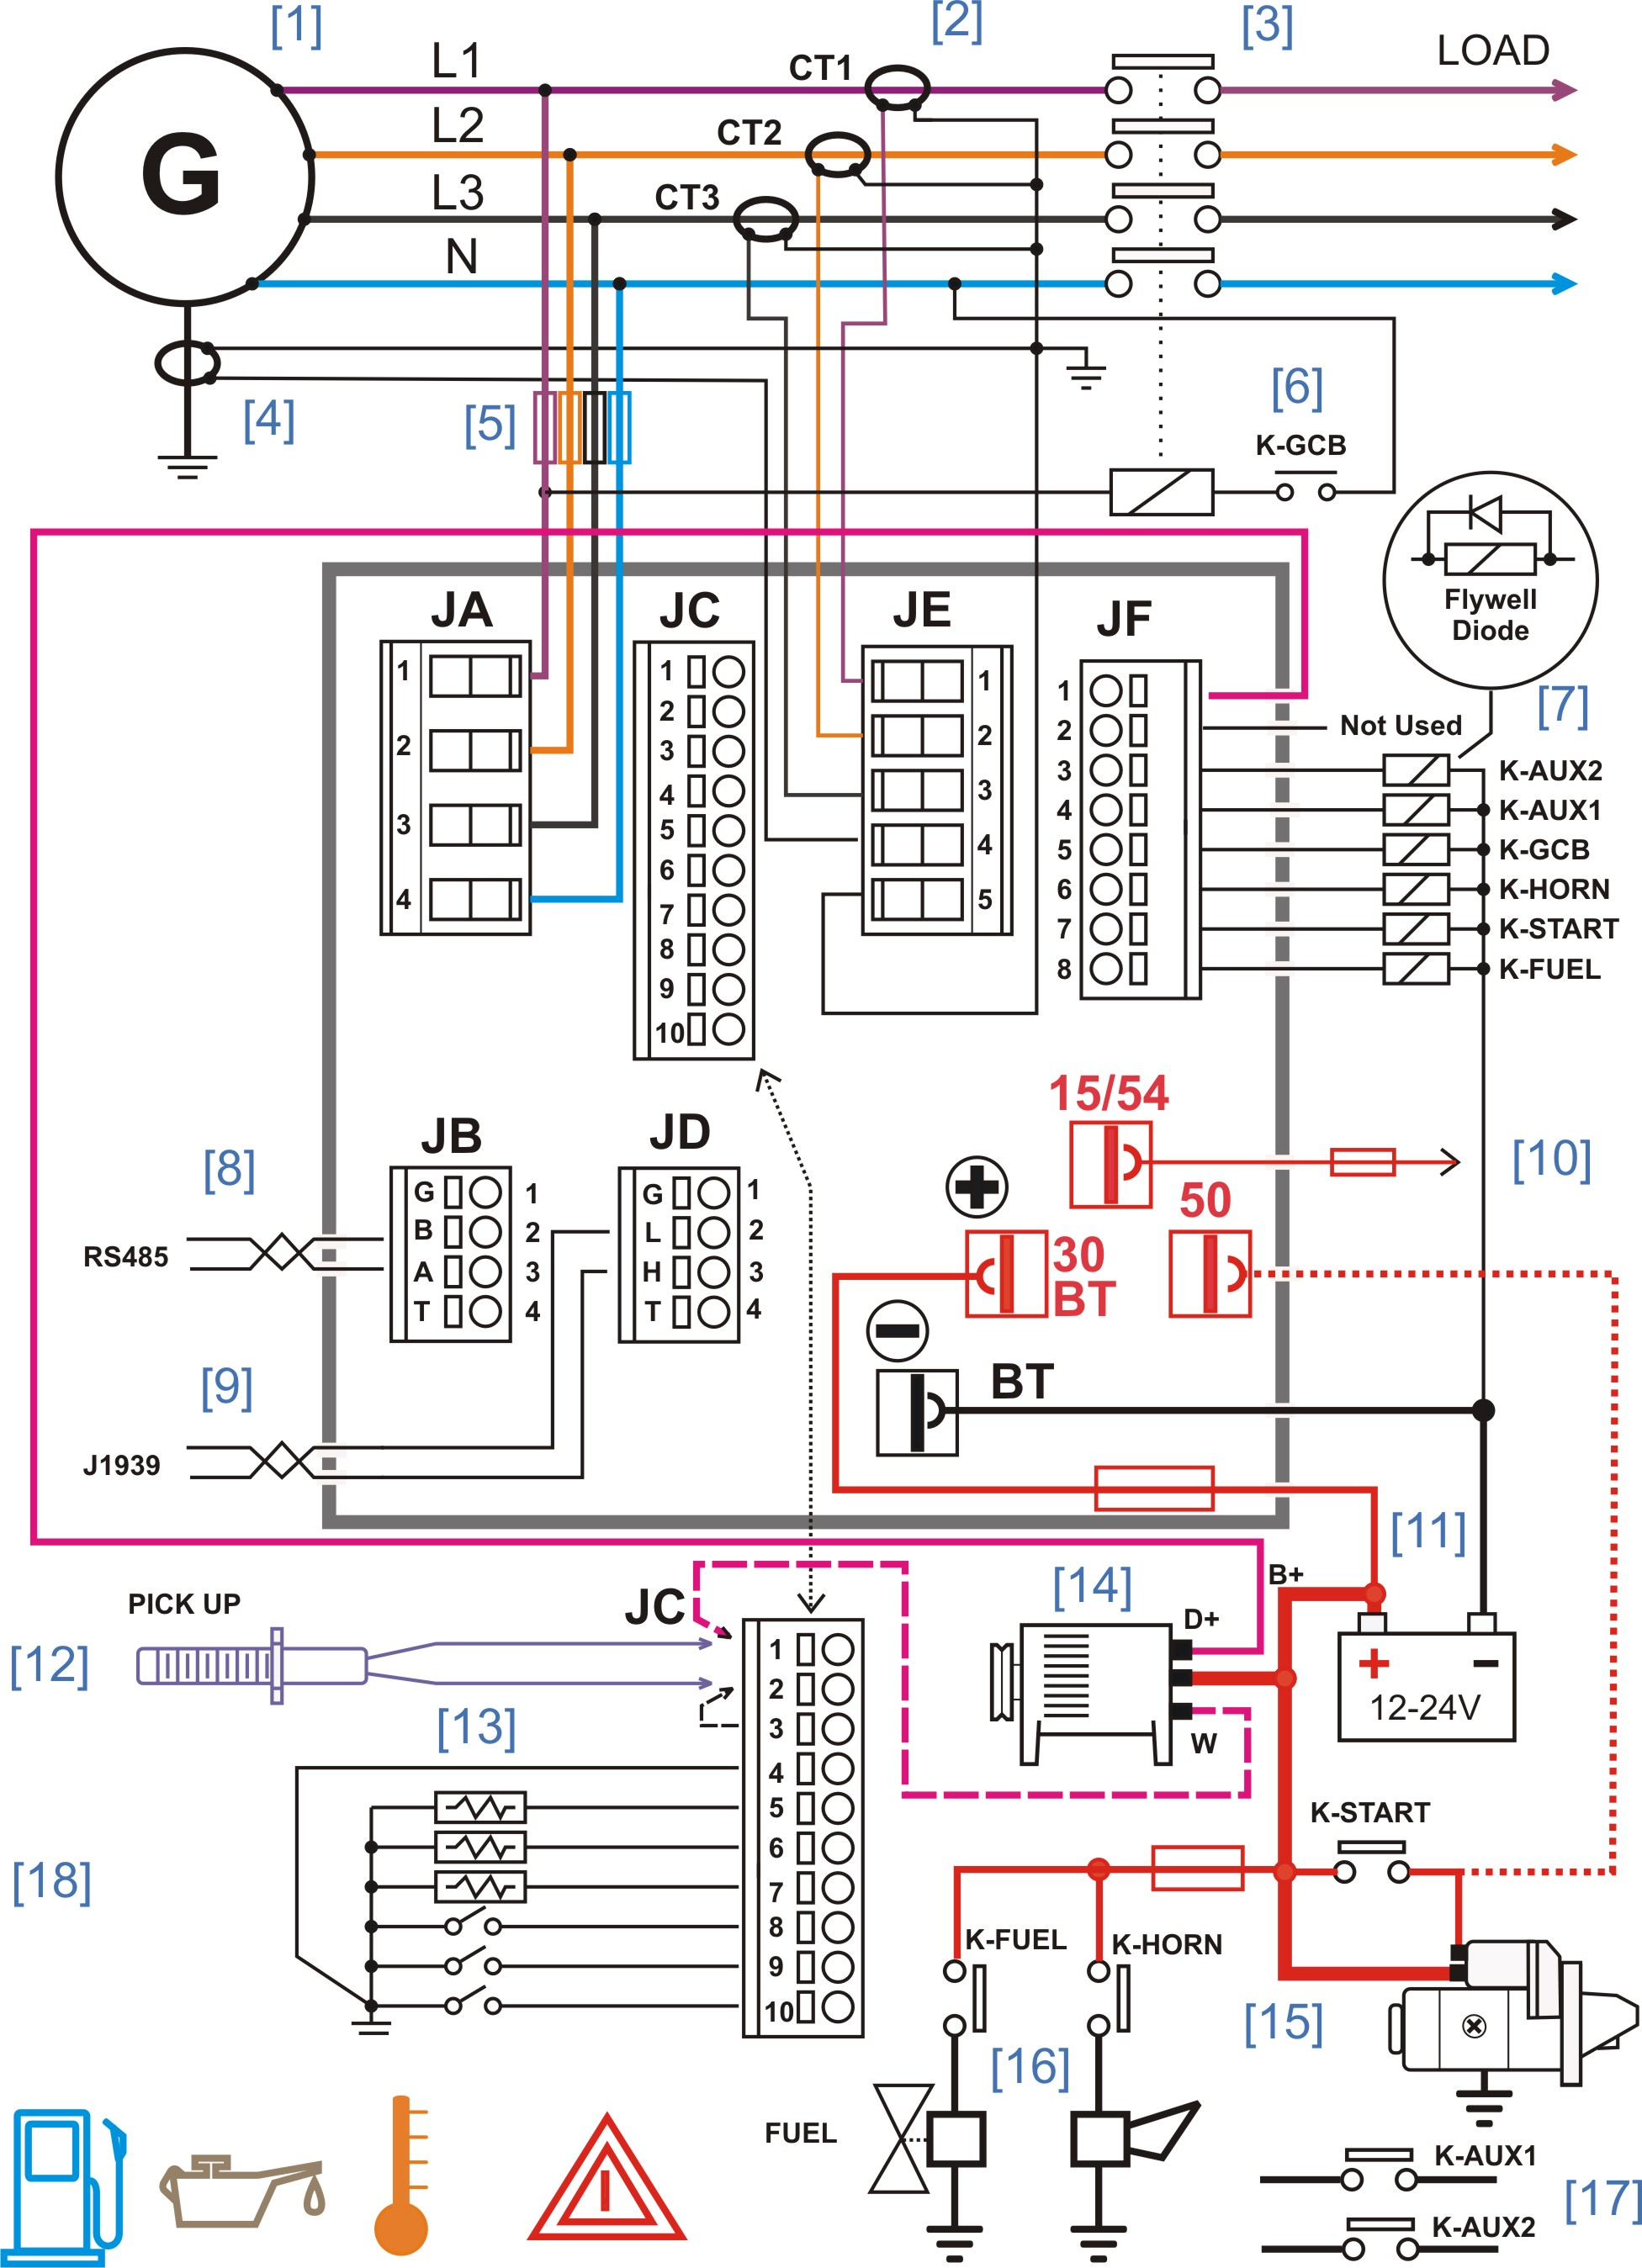 Diesel Generator Control Panel Wiring Diagram diesel generator control panel wiring diagram genset controller generator control panel wiring diagram at gsmportal.co